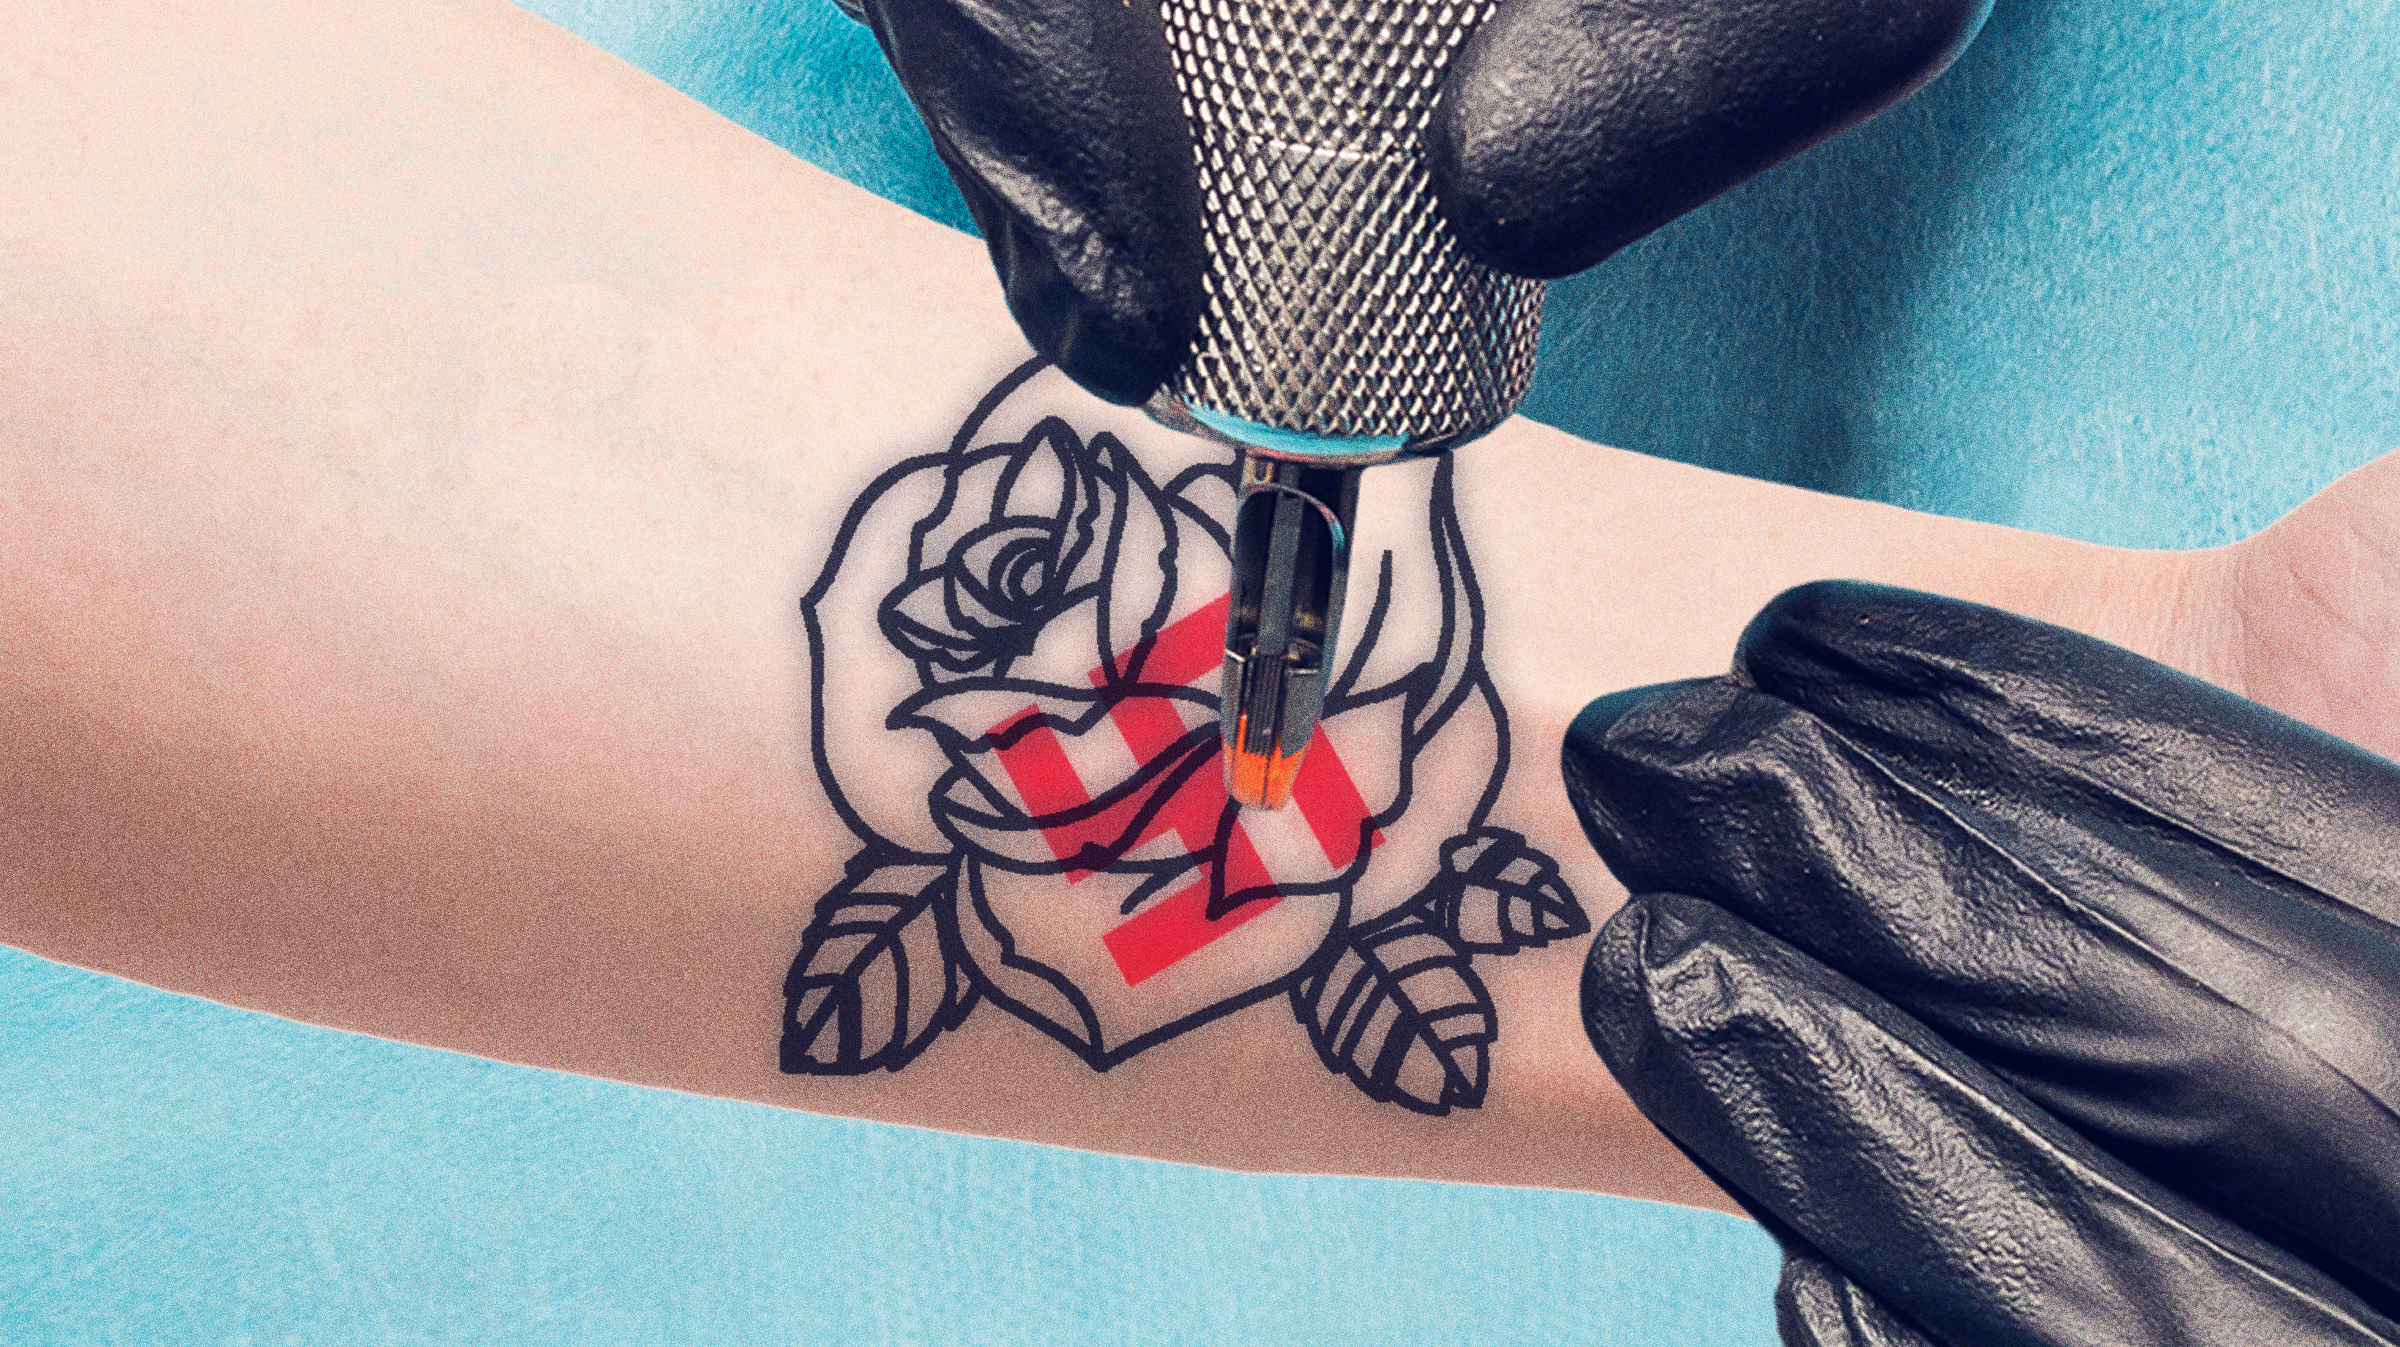 Tattoo Artists Are Covering Up Racist Ink for Free - VICE